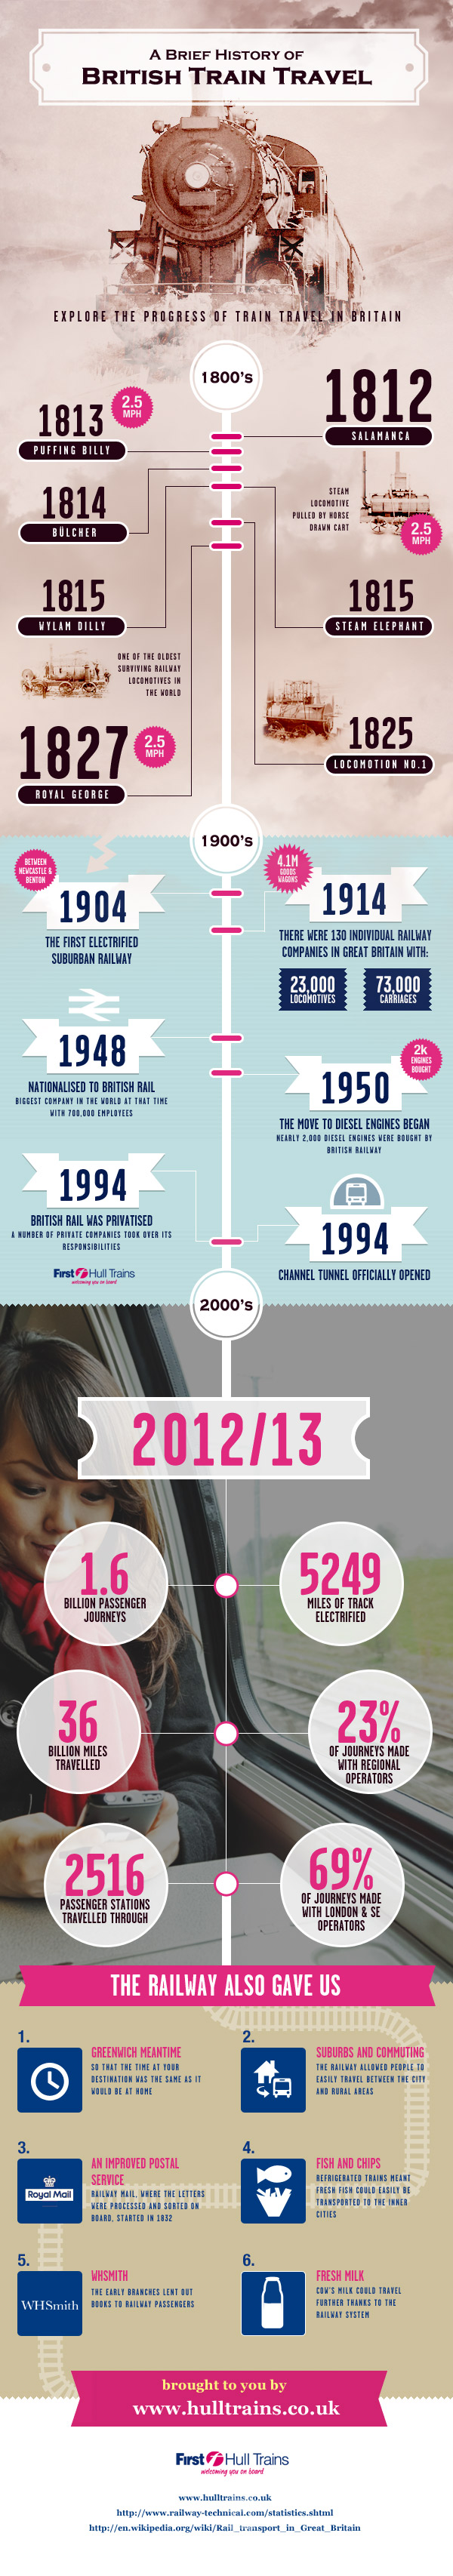 History of British Train Travel  [Infographic]